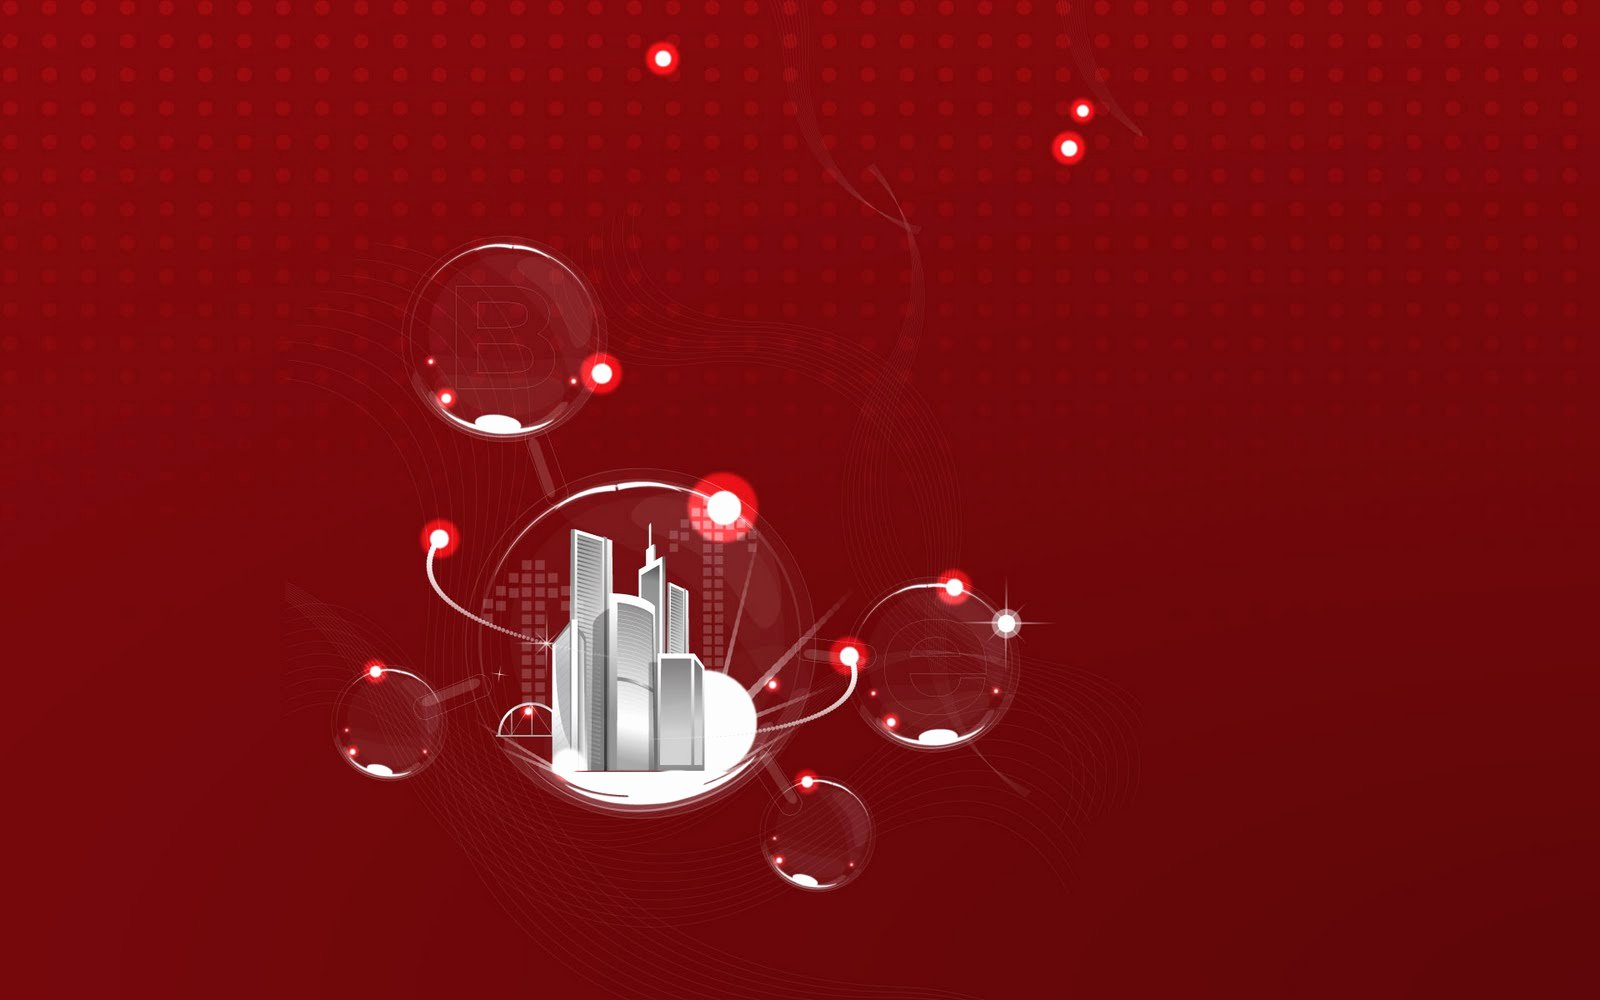 Animated Powerpoint Templates 3d Powerpoint Templates